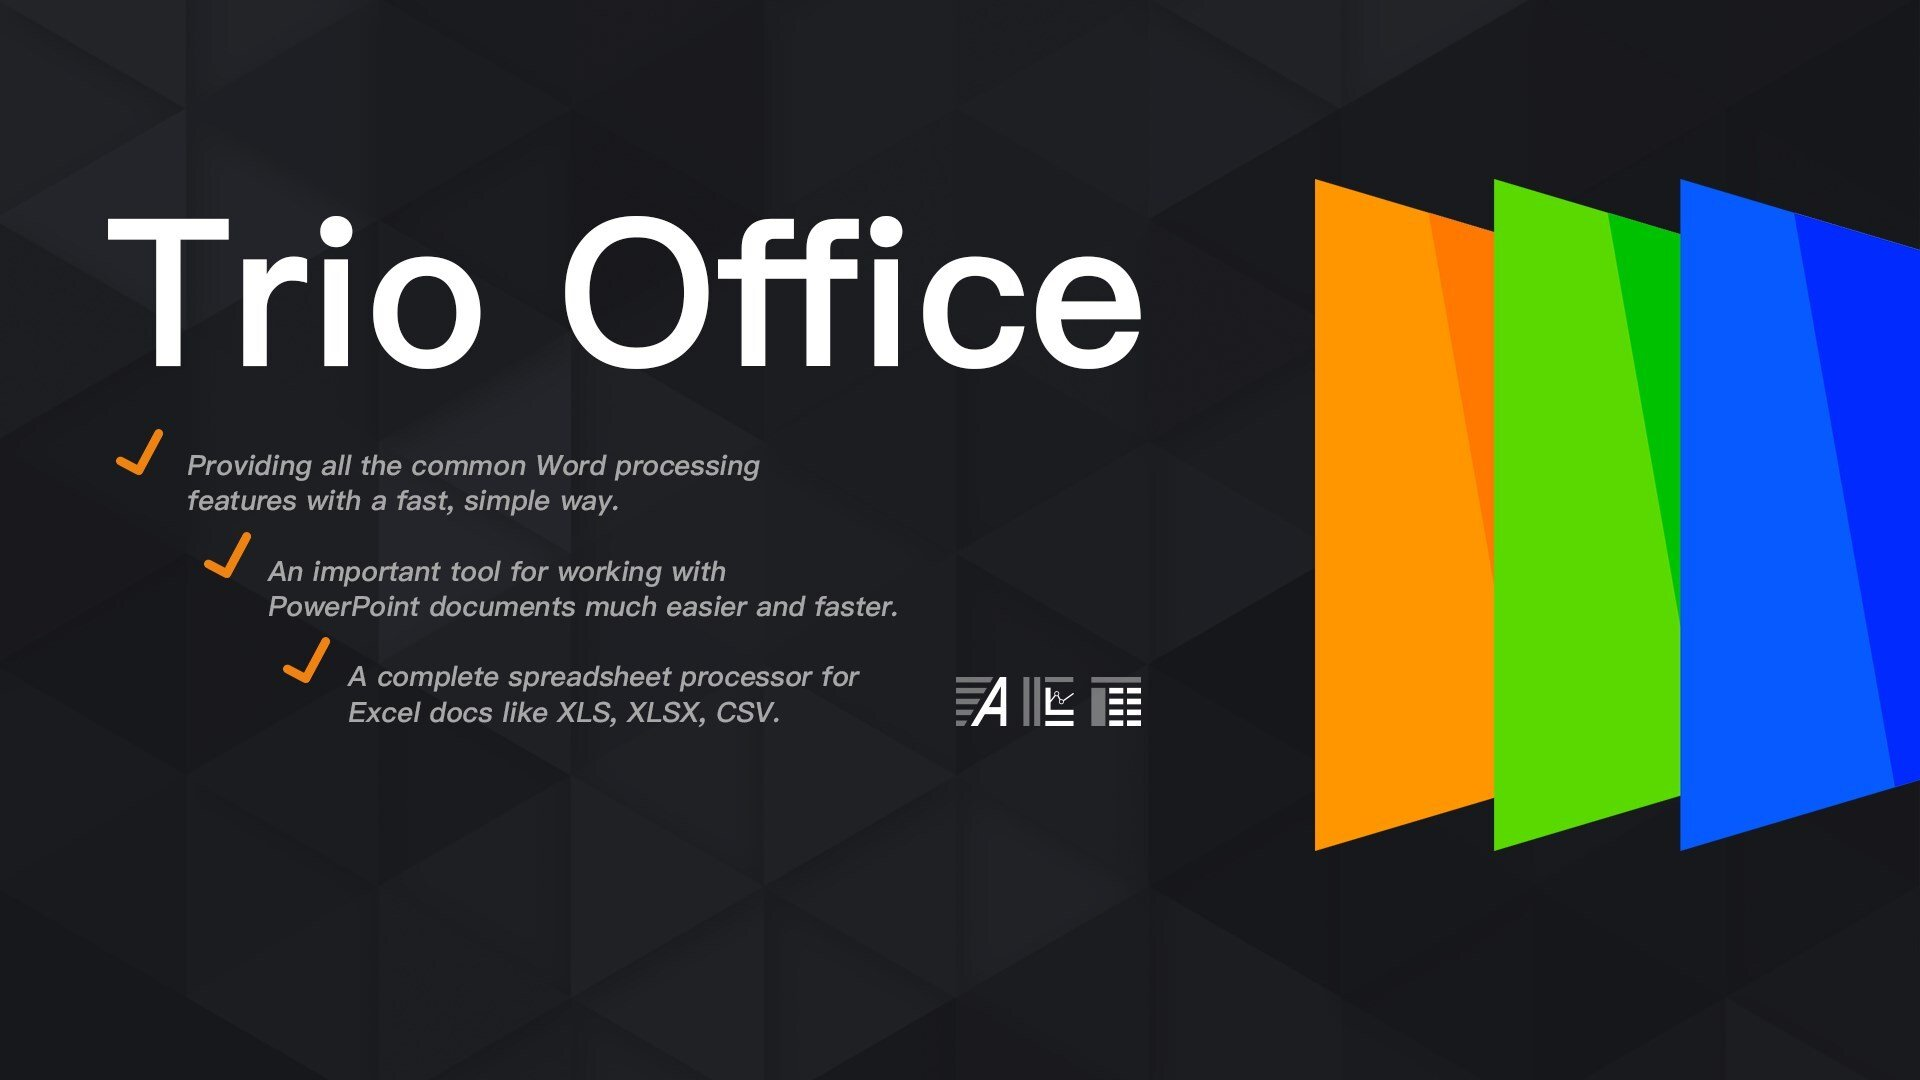 Download Trio Office For Windows 10 - Underrated MS Office